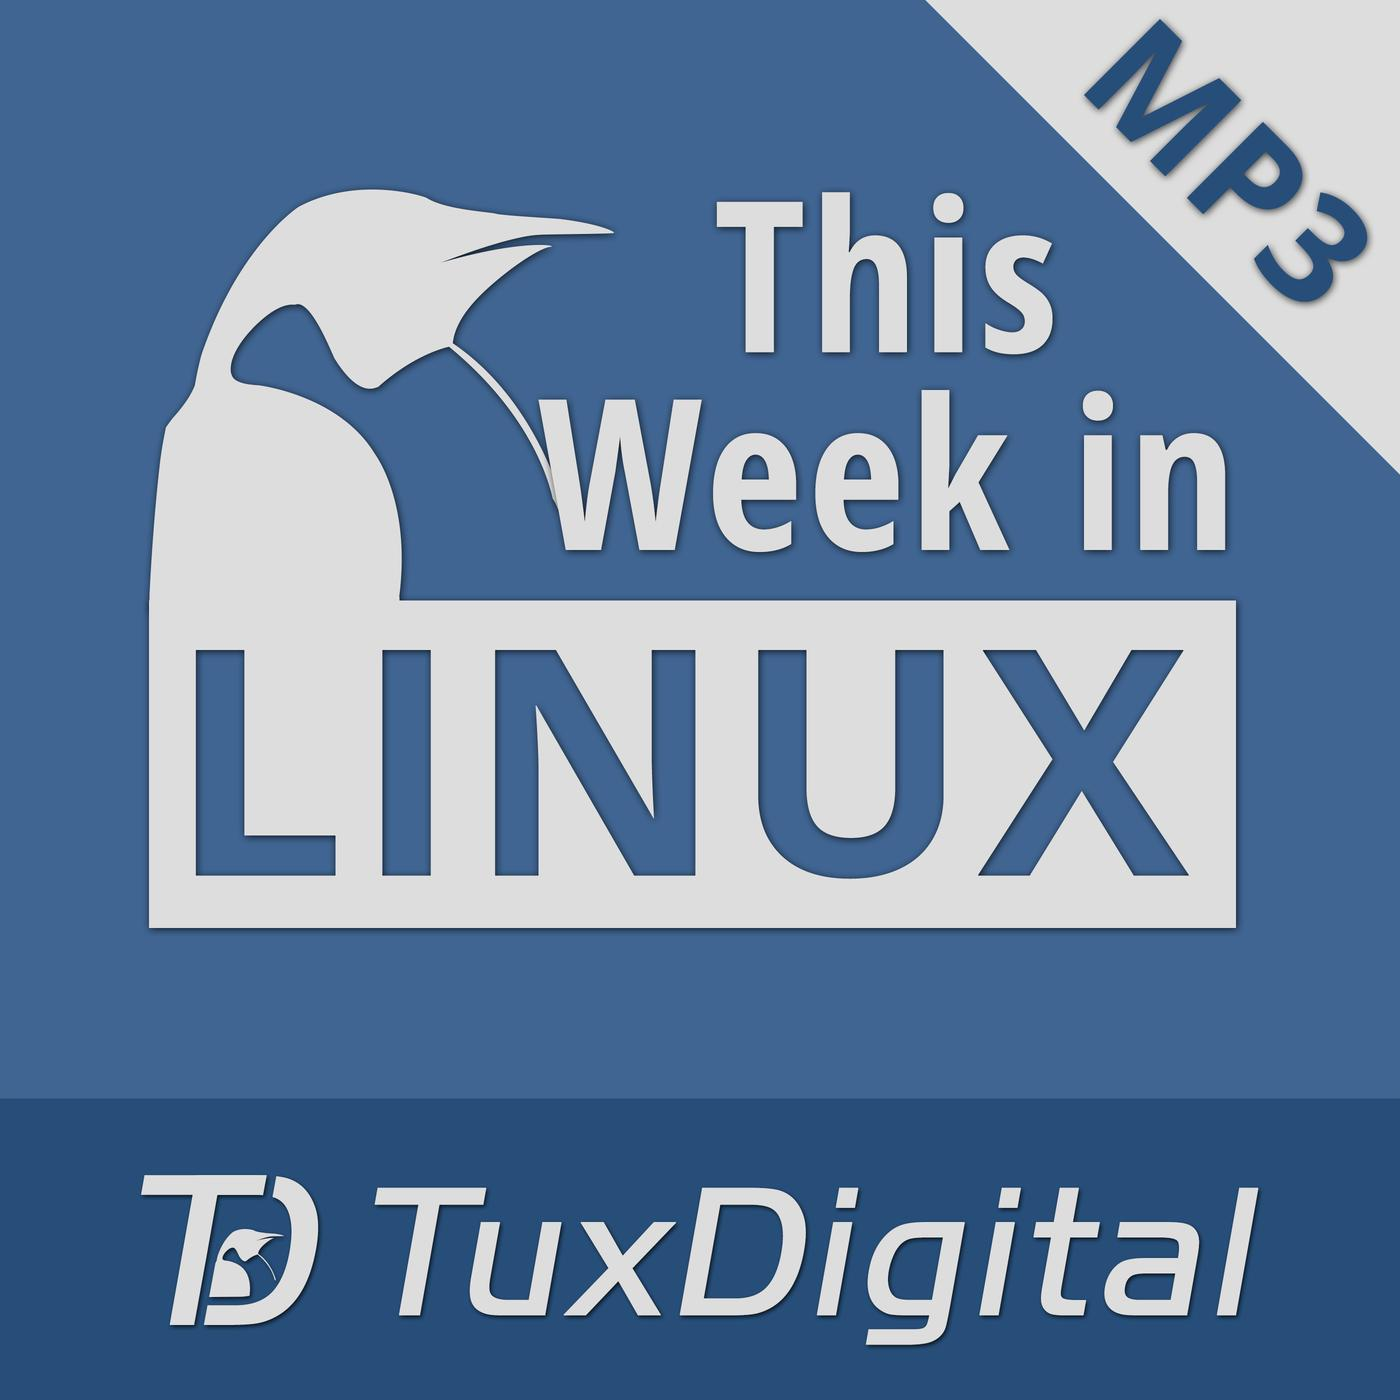 This Week in Linux (podcast) - TuxDigital | Listen Notes